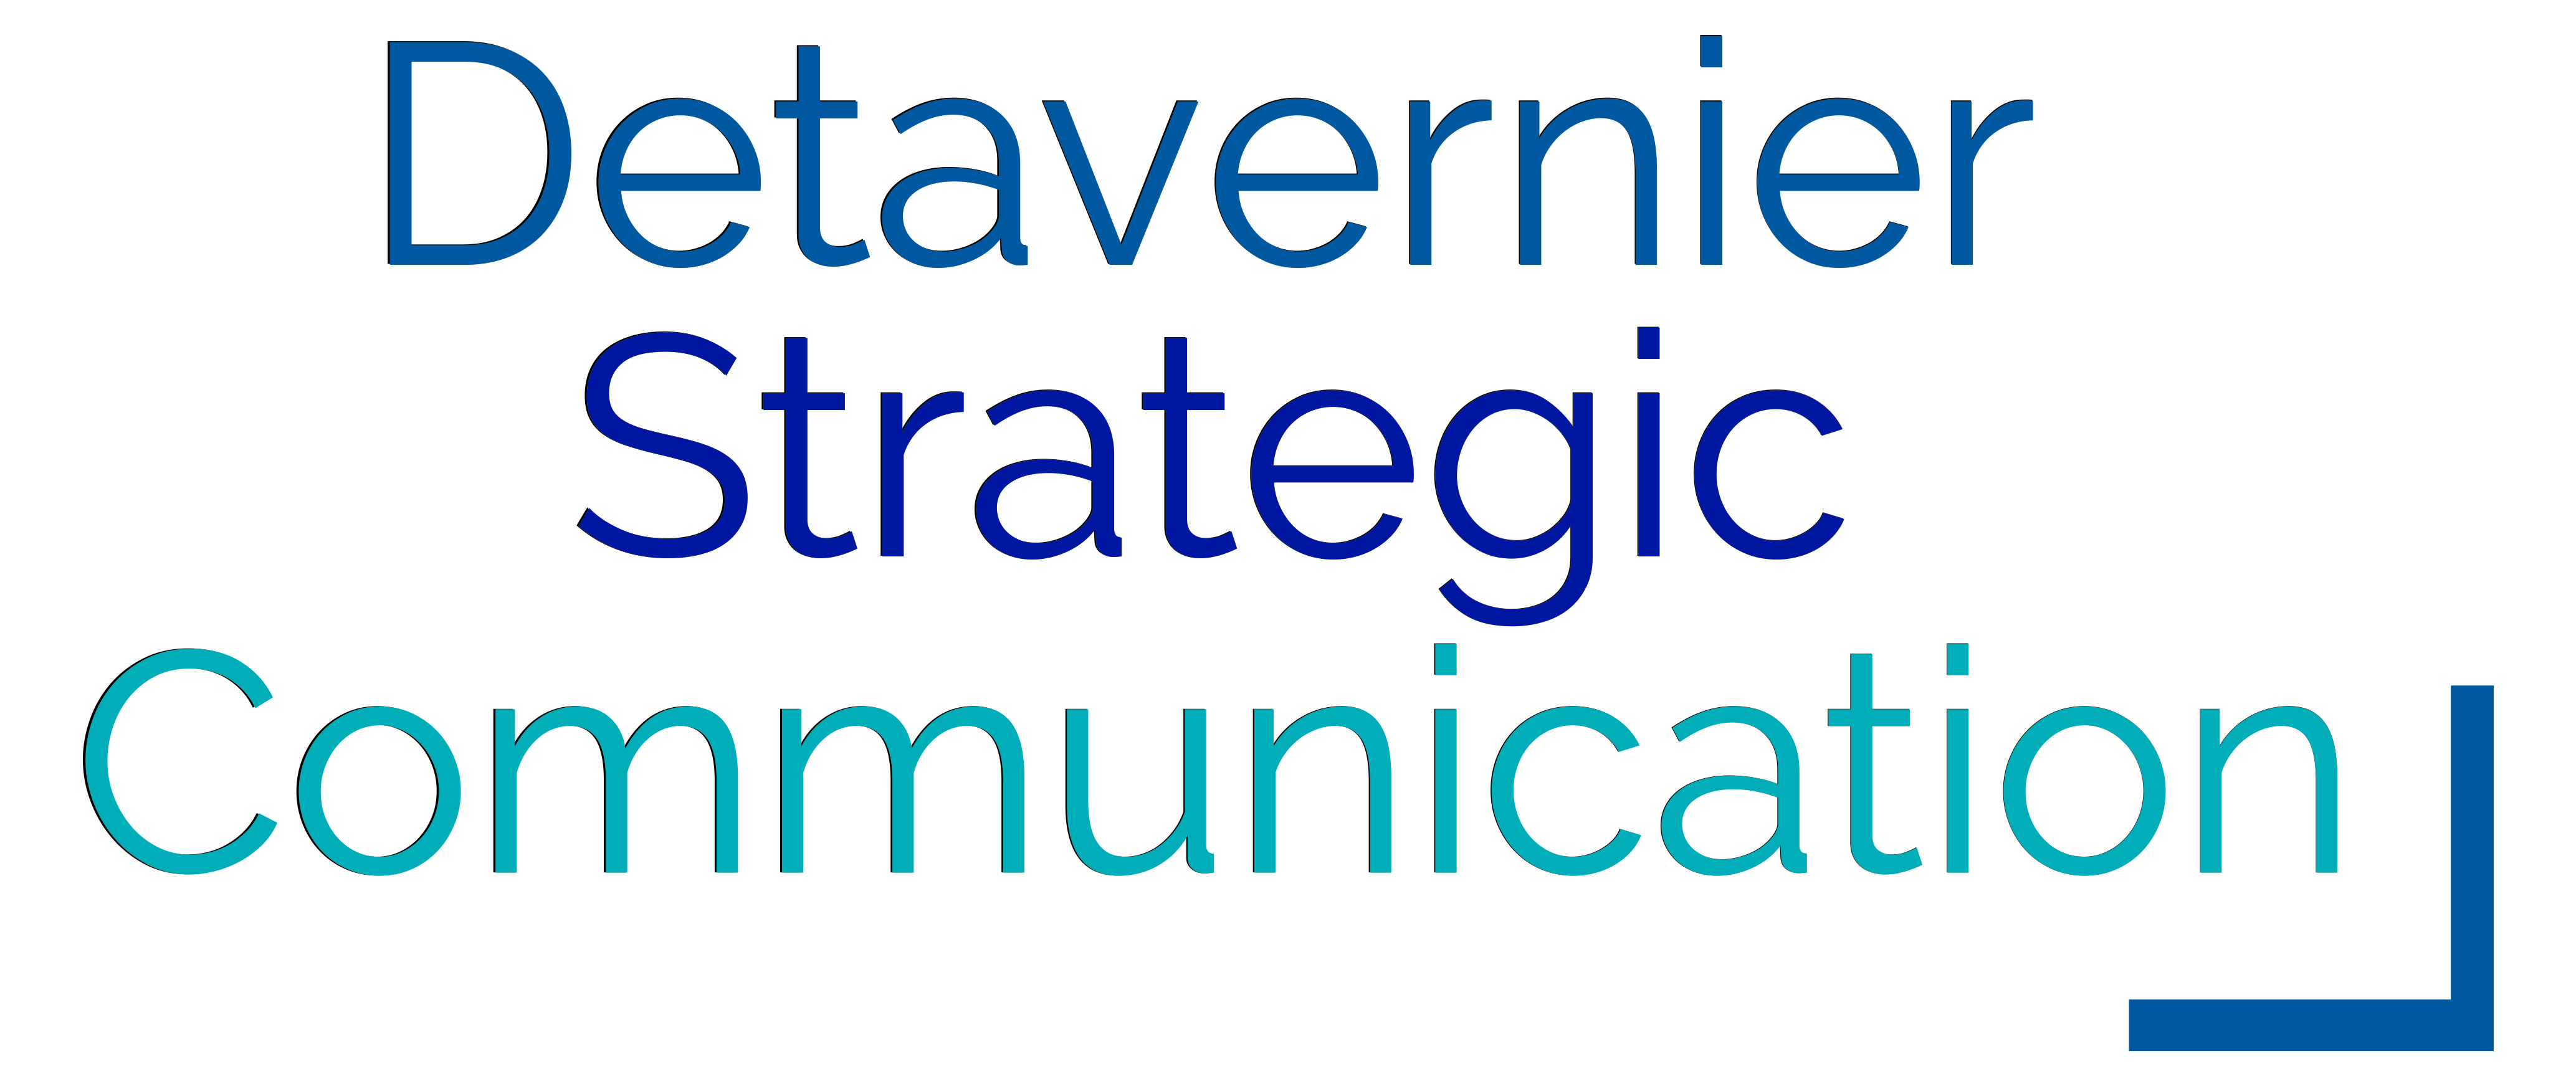 Detavernier Strategic Communication